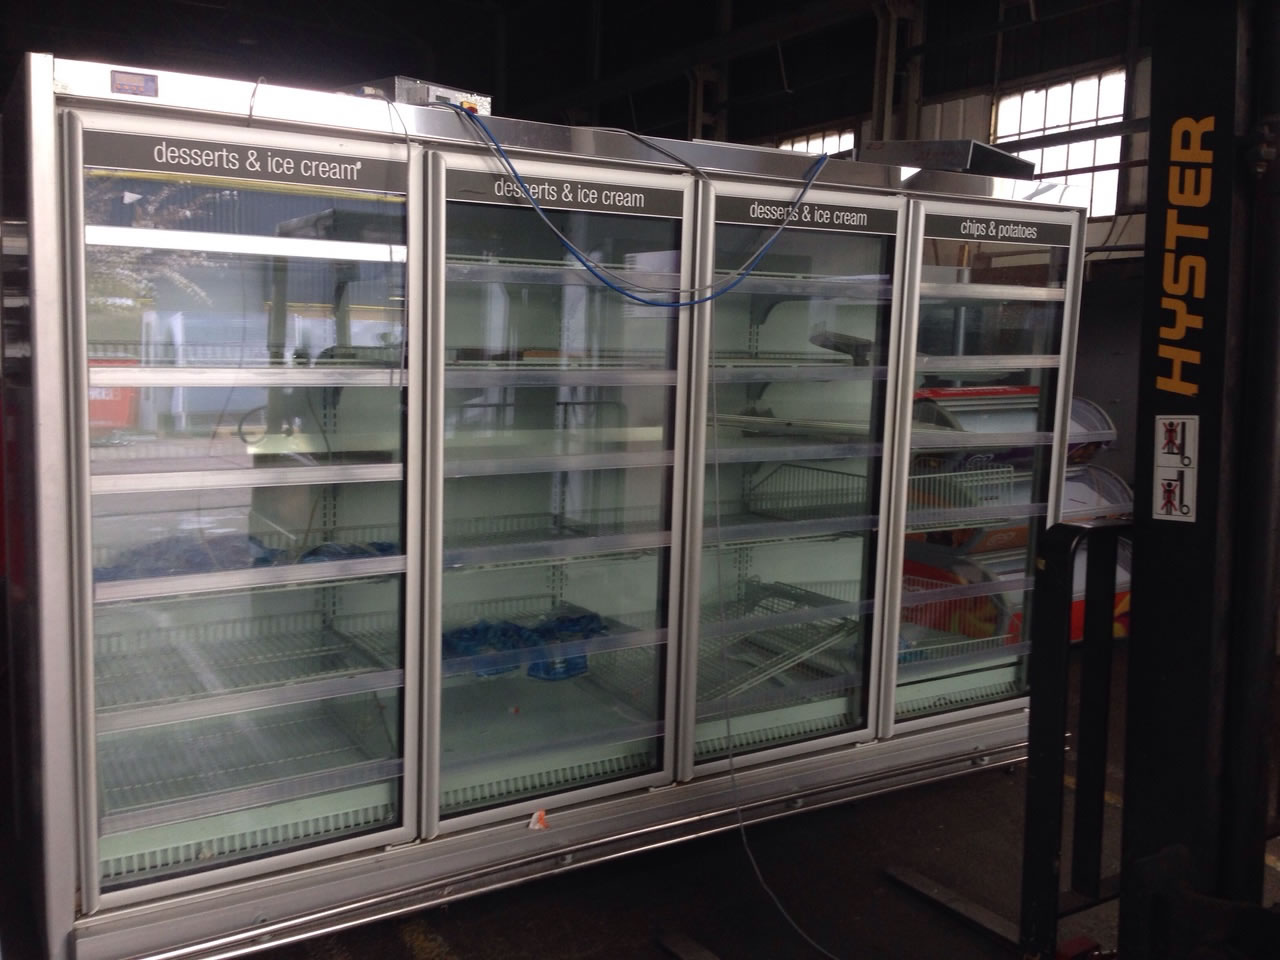 Used display freezers and soft scoop ice cream displays area upright glass door remote freezers planetlyrics Gallery